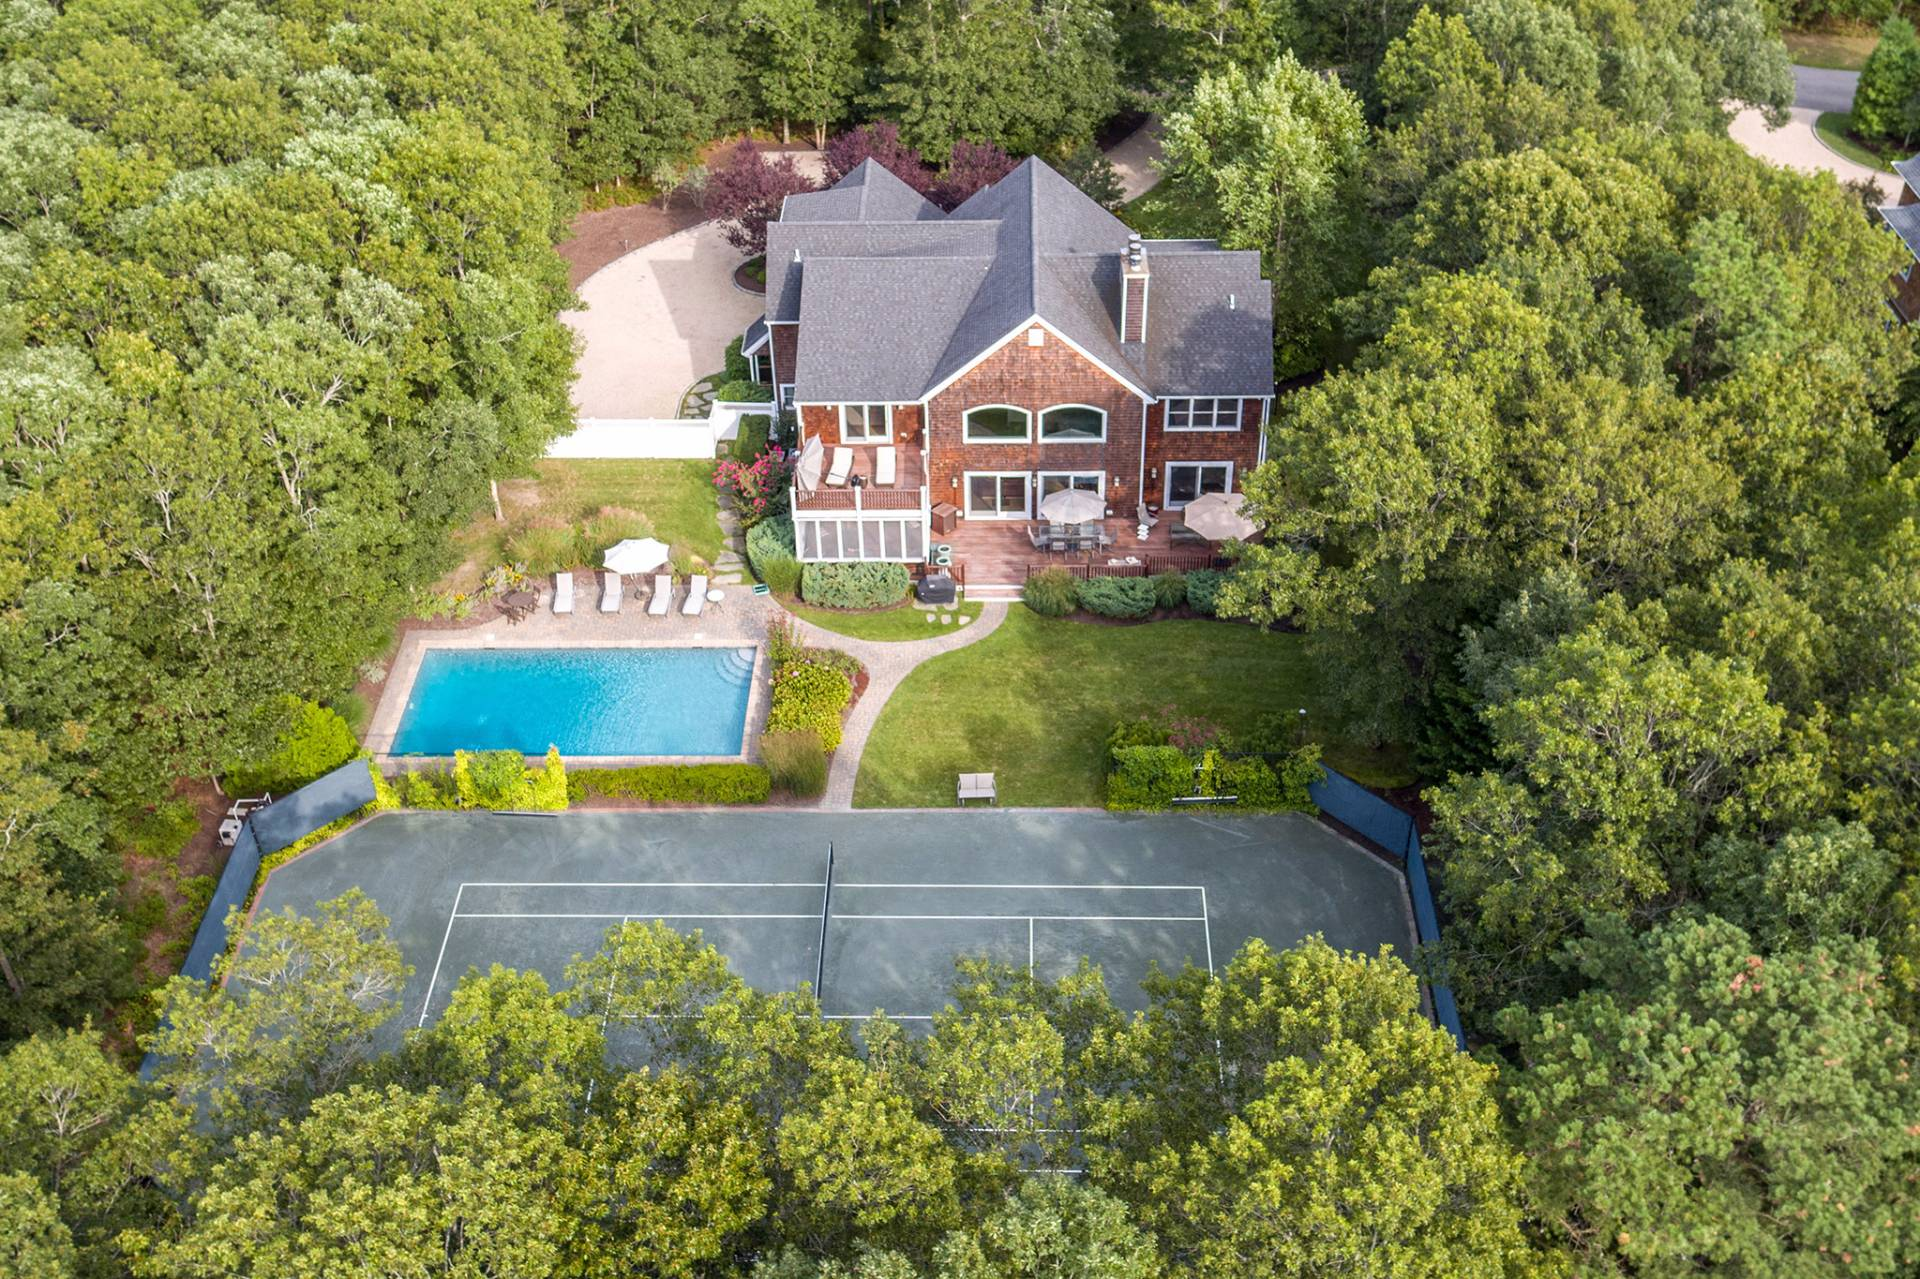 独户住宅 为 销售 在 Quogue Village Beauty With Pool And Tennis On 1.2 Acres 37 Arbutus Road, Quogue, 纽约州